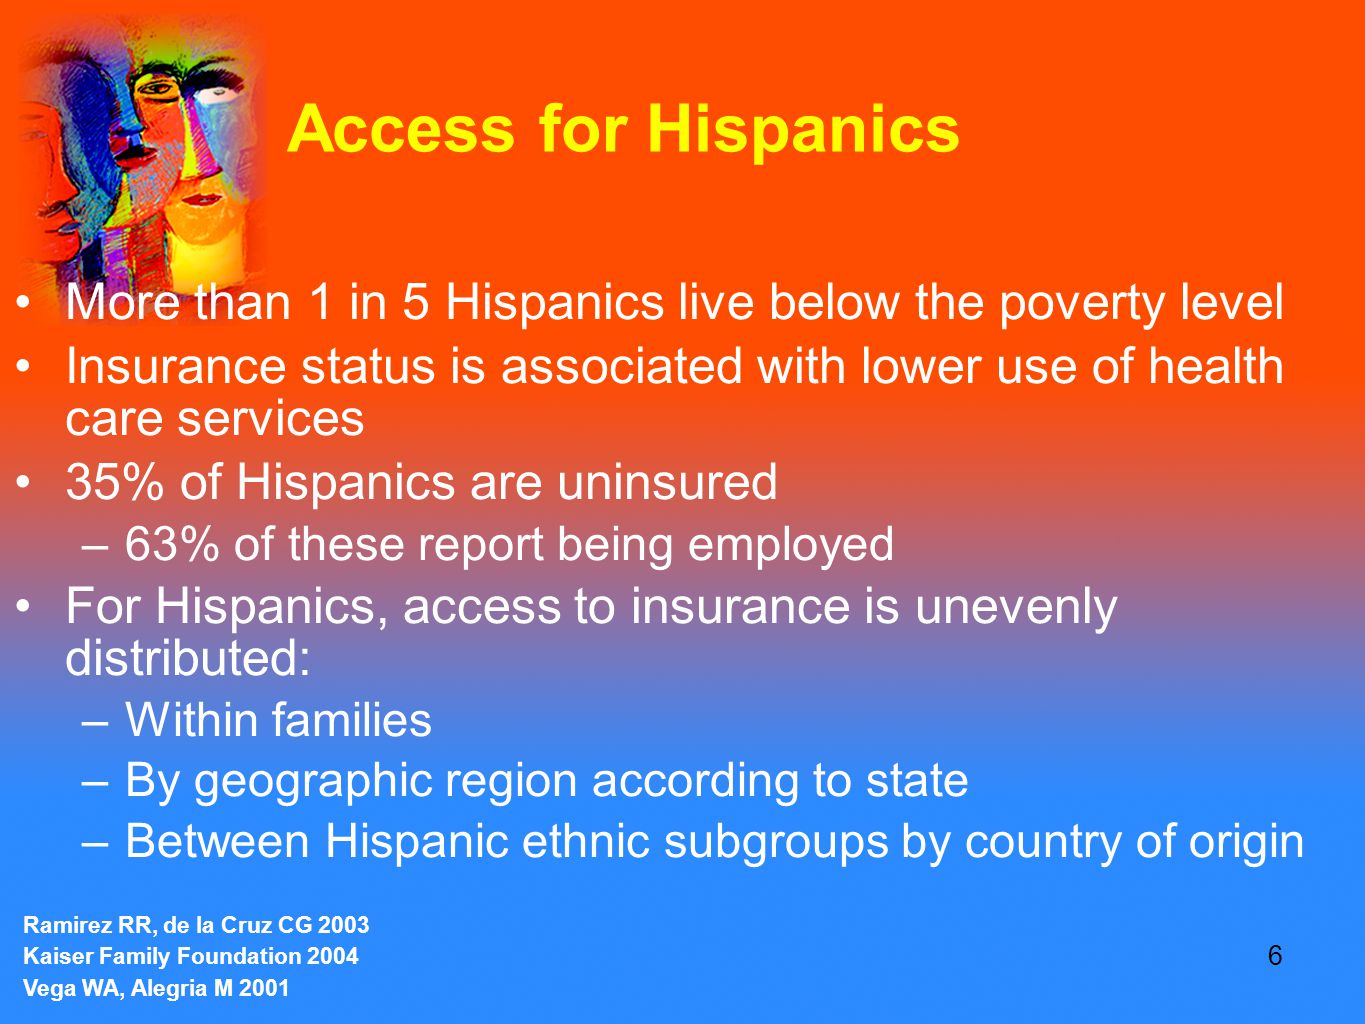 6 Ramirez RR, de la Cruz CG 2003 Kaiser Family Foundation 2004 Vega WA, Alegria M 2001 Access for Hispanics More than 1 in 5 Hispanics live below the poverty level Insurance status is associated with lower use of health care services 35% of Hispanics are uninsured –63% of these report being employed For Hispanics, access to insurance is unevenly distributed: –Within families –By geographic region according to state –Between Hispanic ethnic subgroups by country of origin